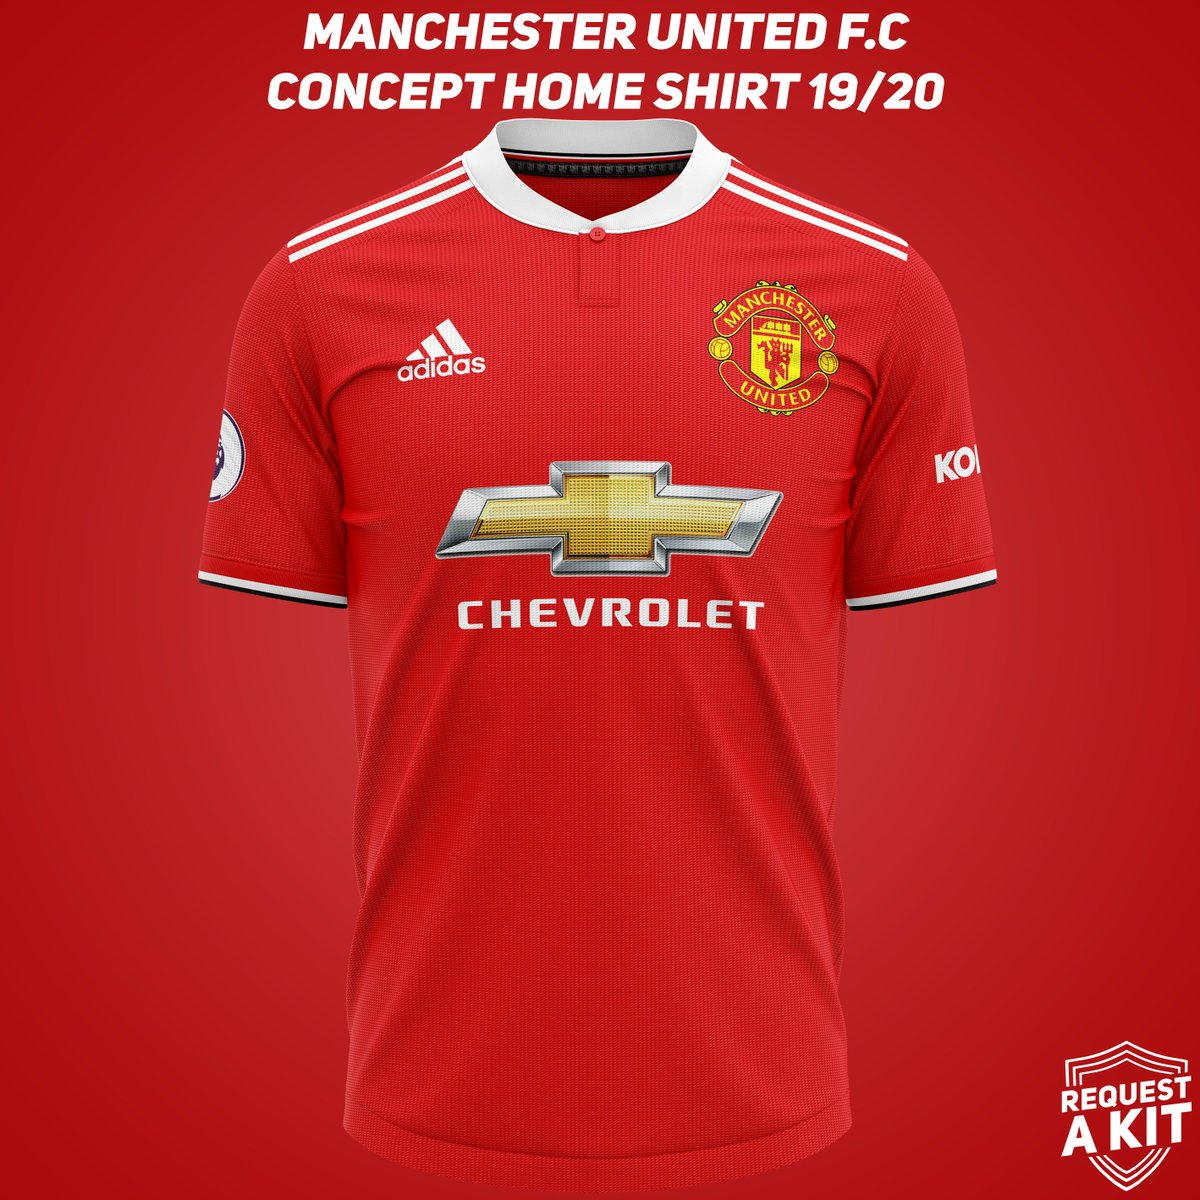 095dbf8a Manchester United F.C Concept Home, Away and Third shirts 2019-20  (requested by @kylecm27) #MUFC #ManchesterUnited #FM19 #wearethecommunity  Download for ...